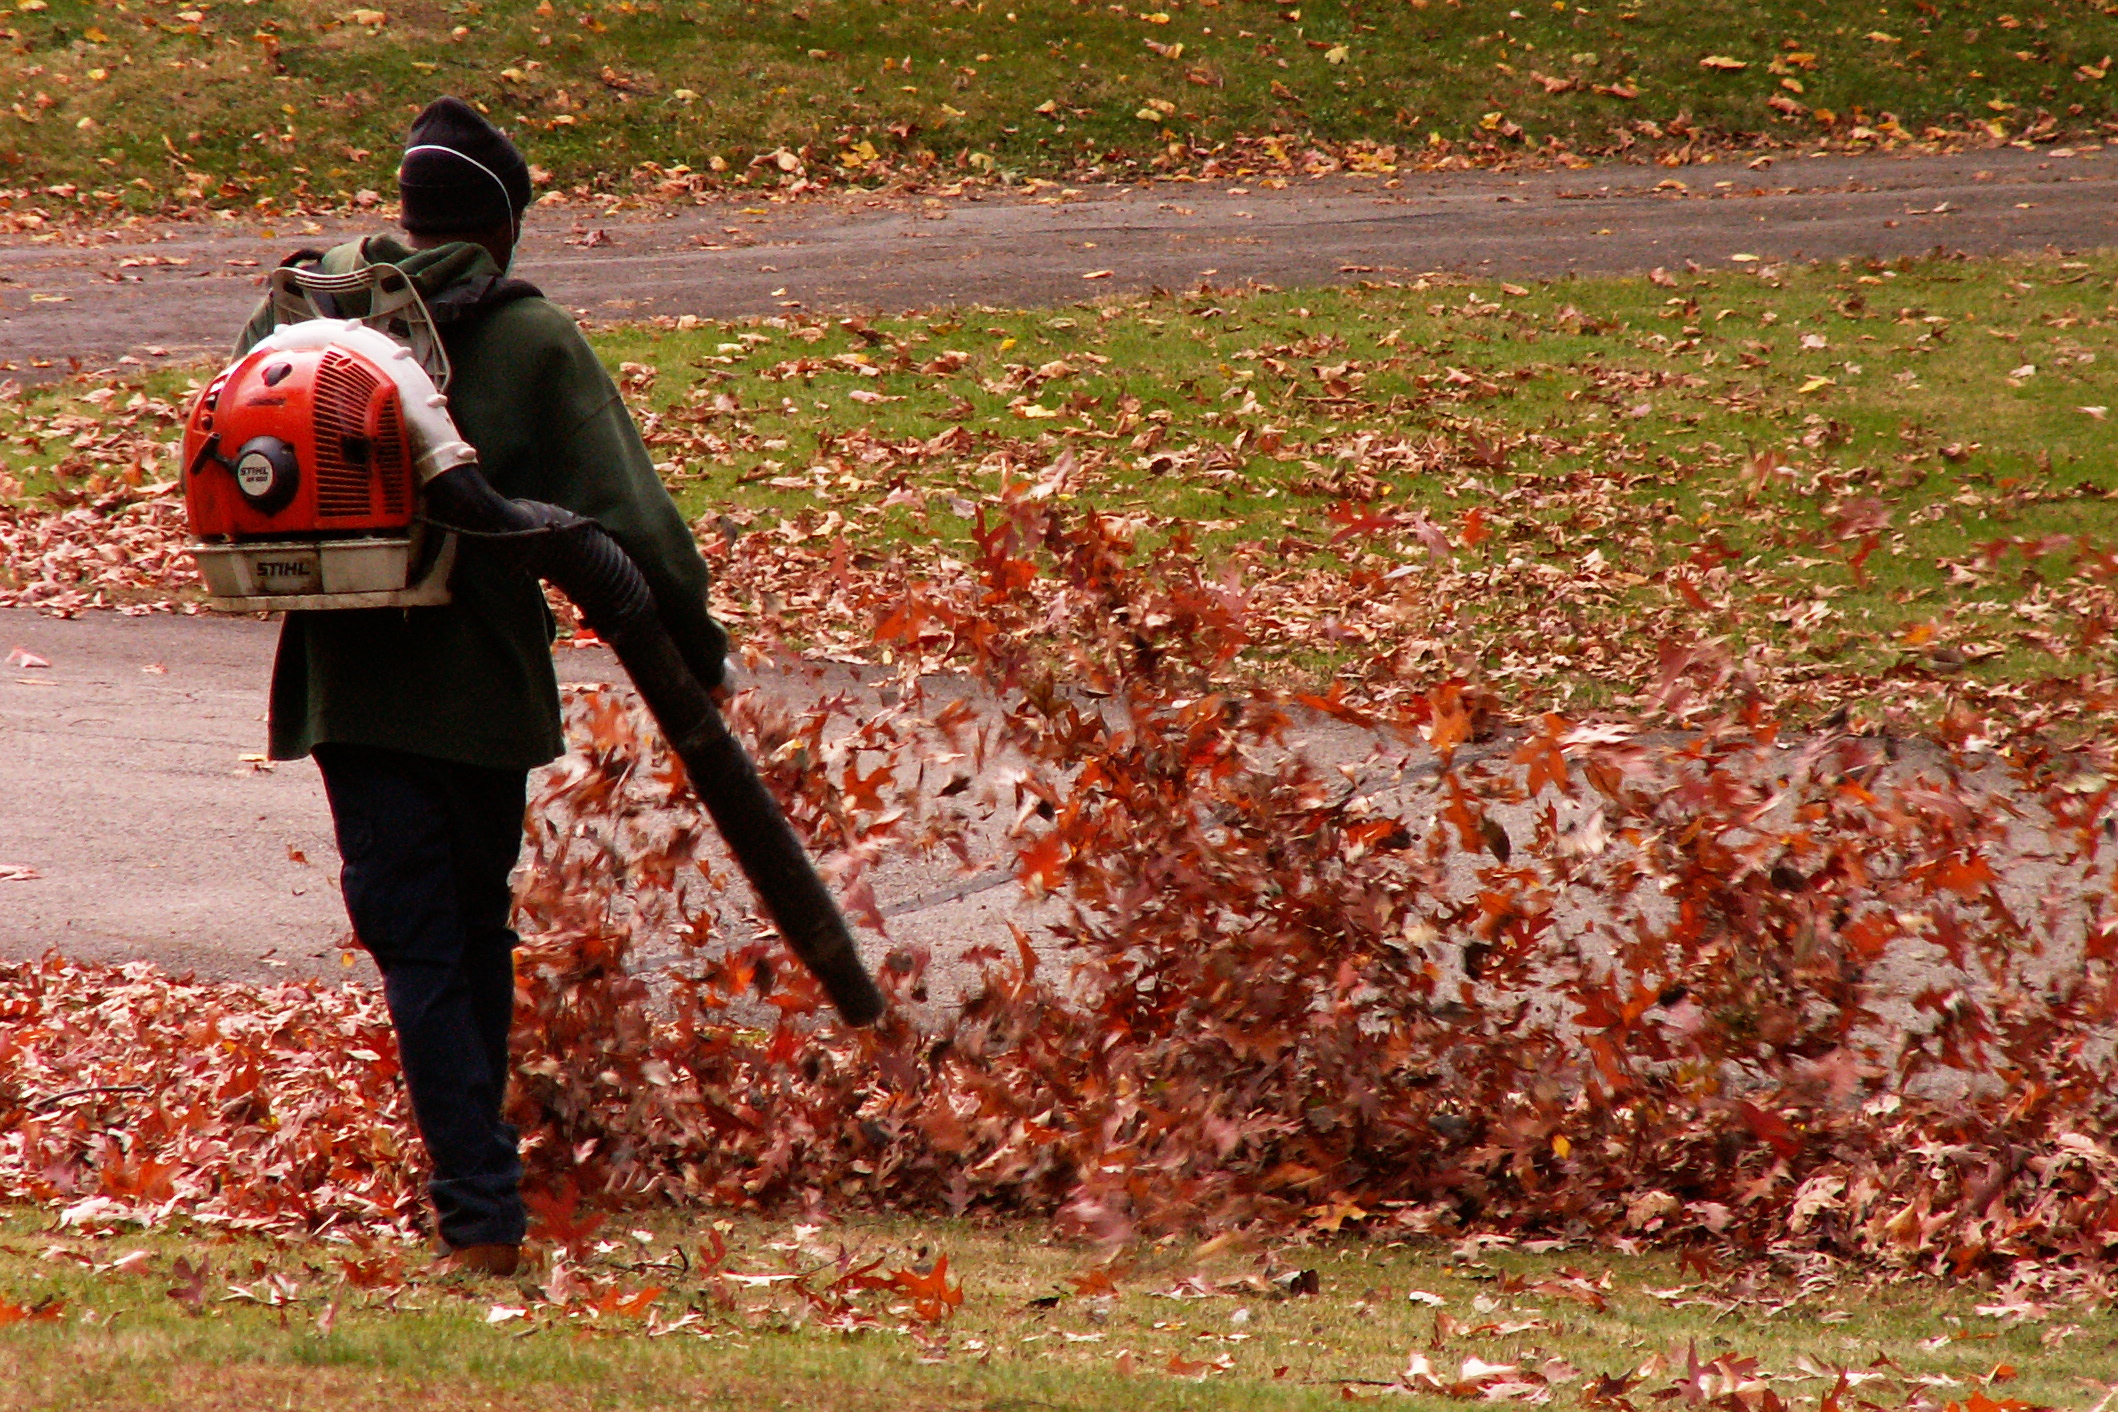 blowing off both wet and dry leafs